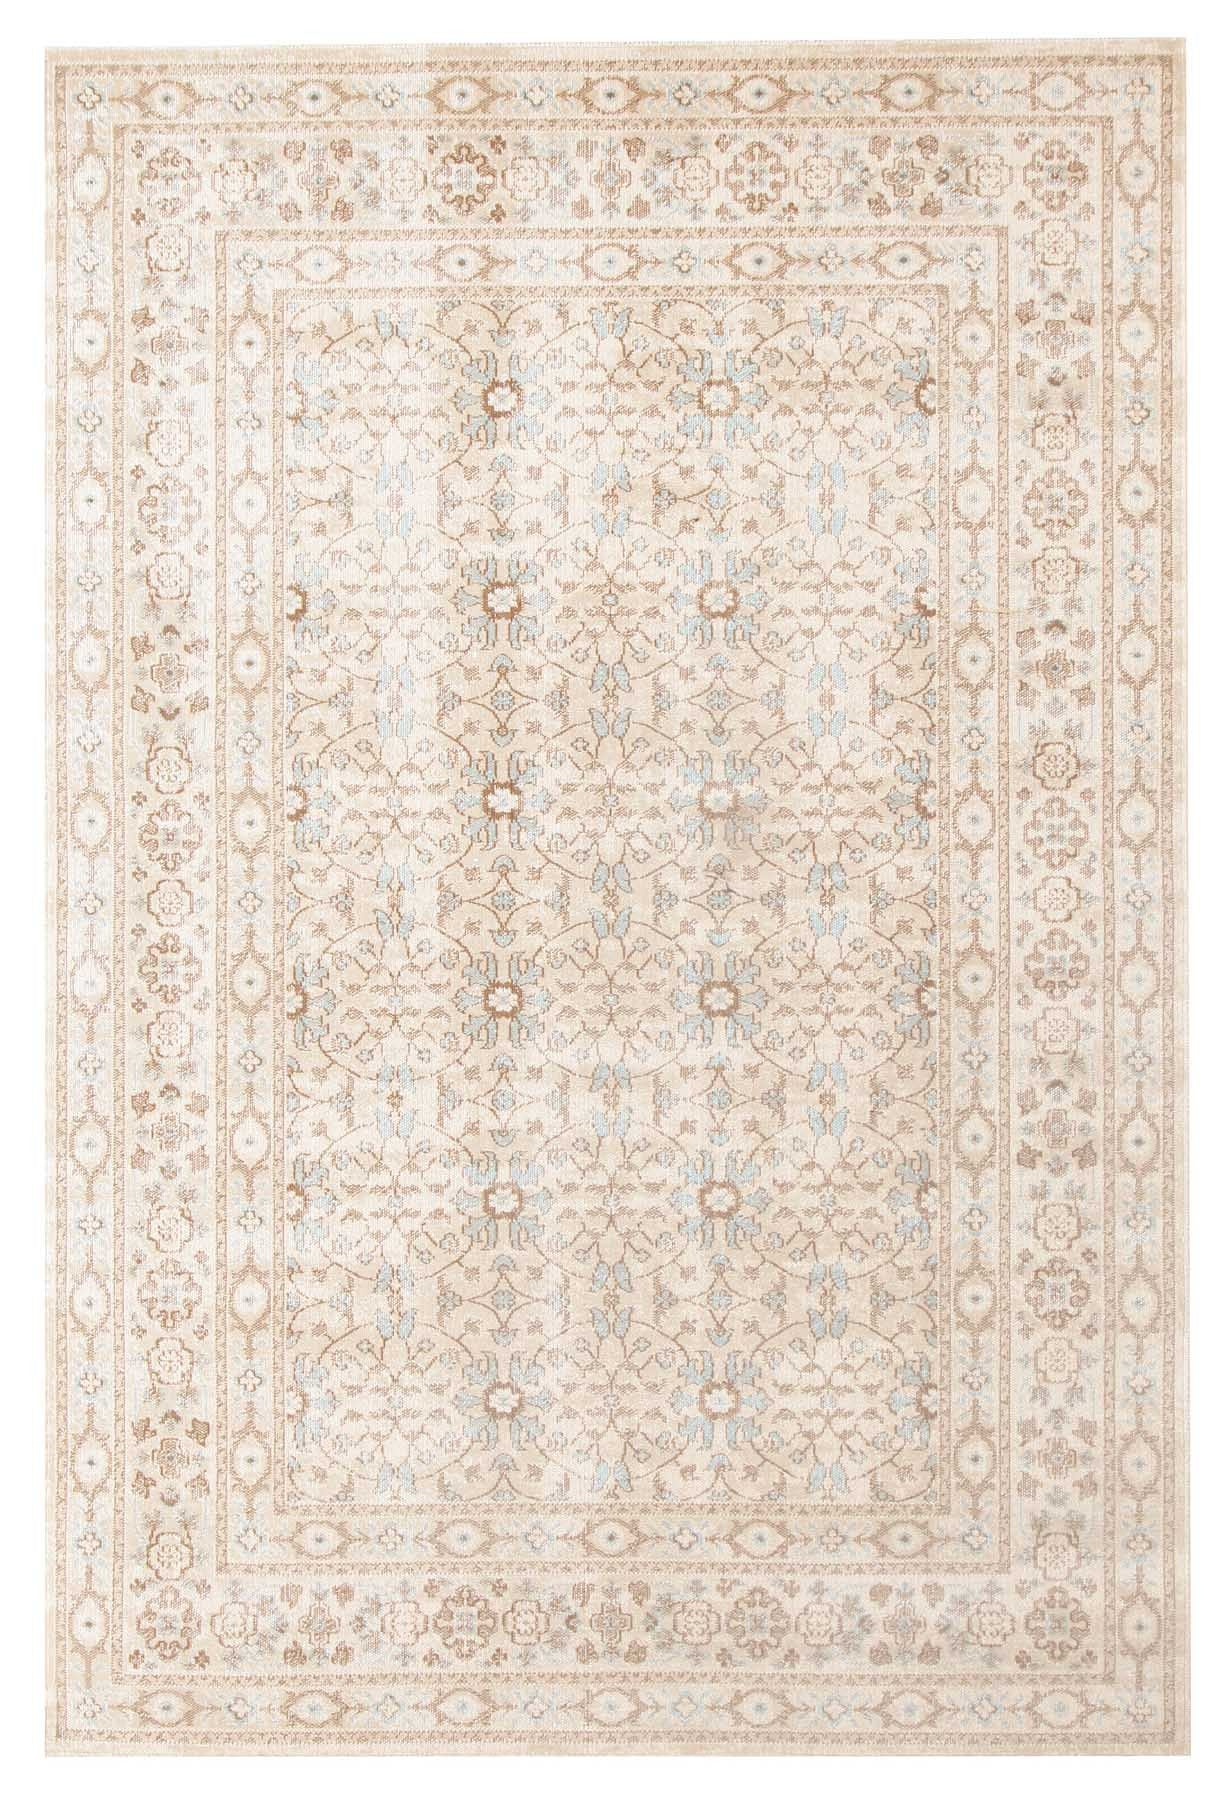 Eternal 911 Rug - Bone